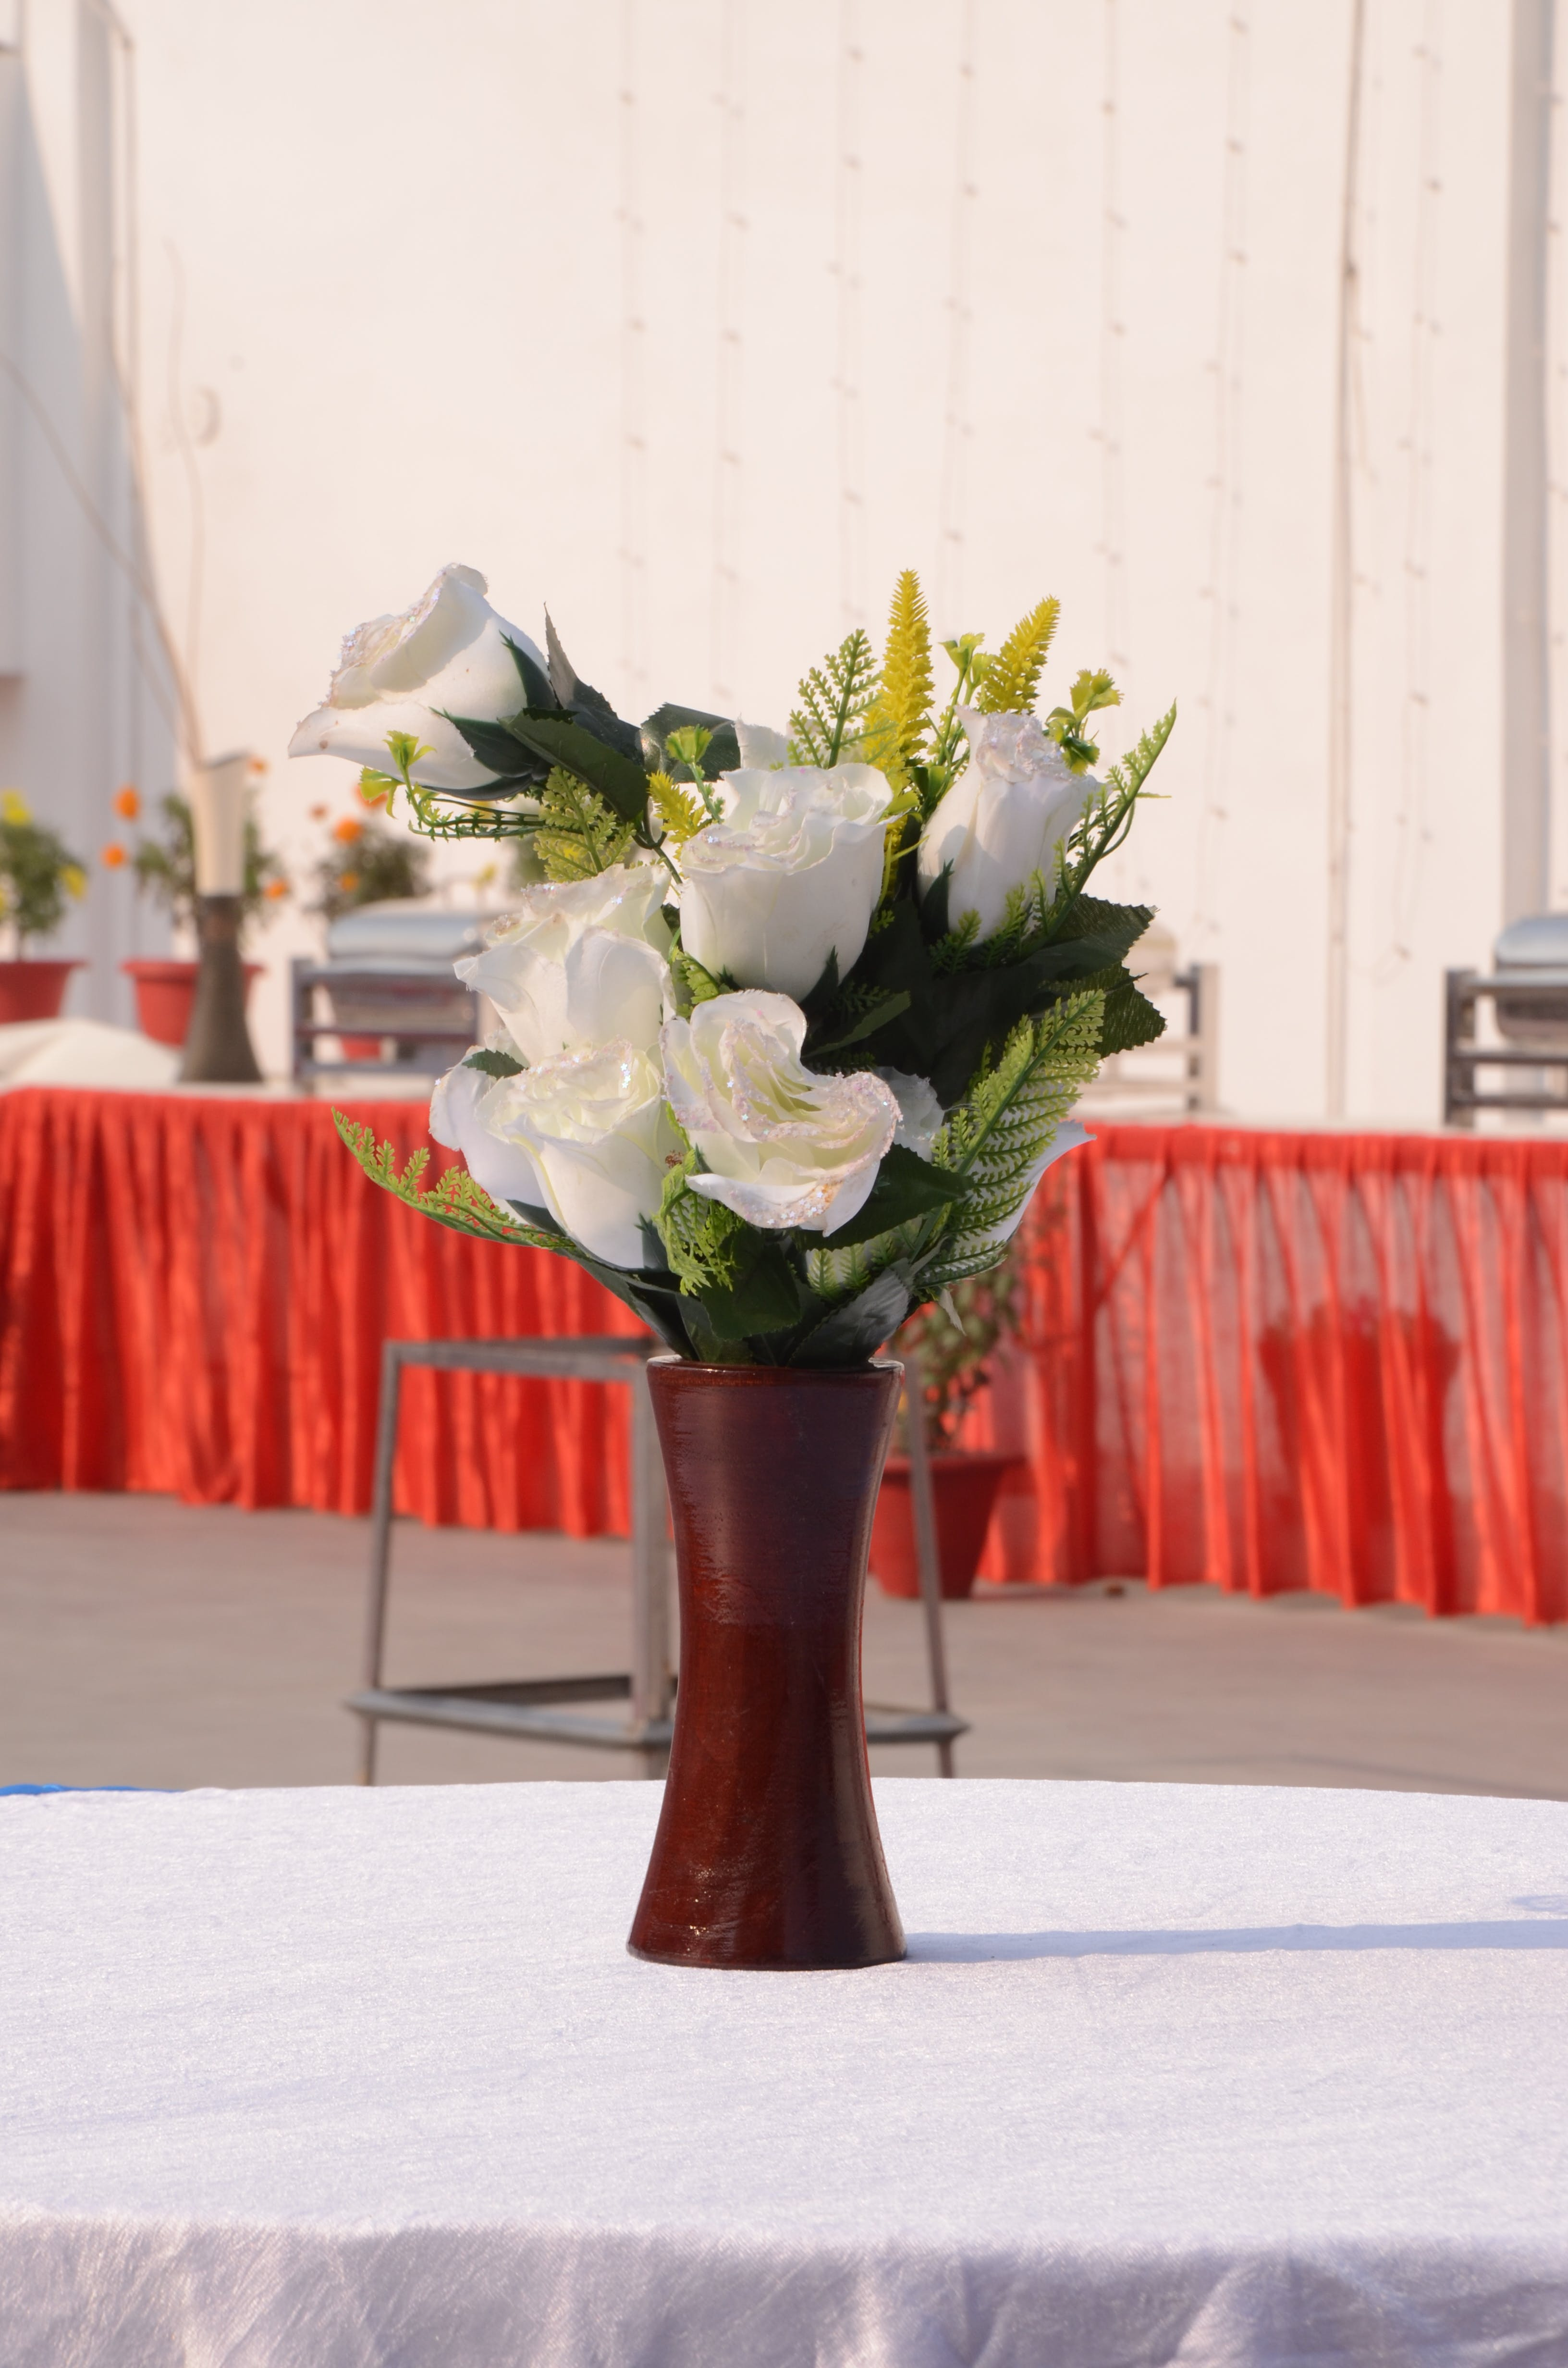 White Roses in Red Vase Centerpiece on White Table